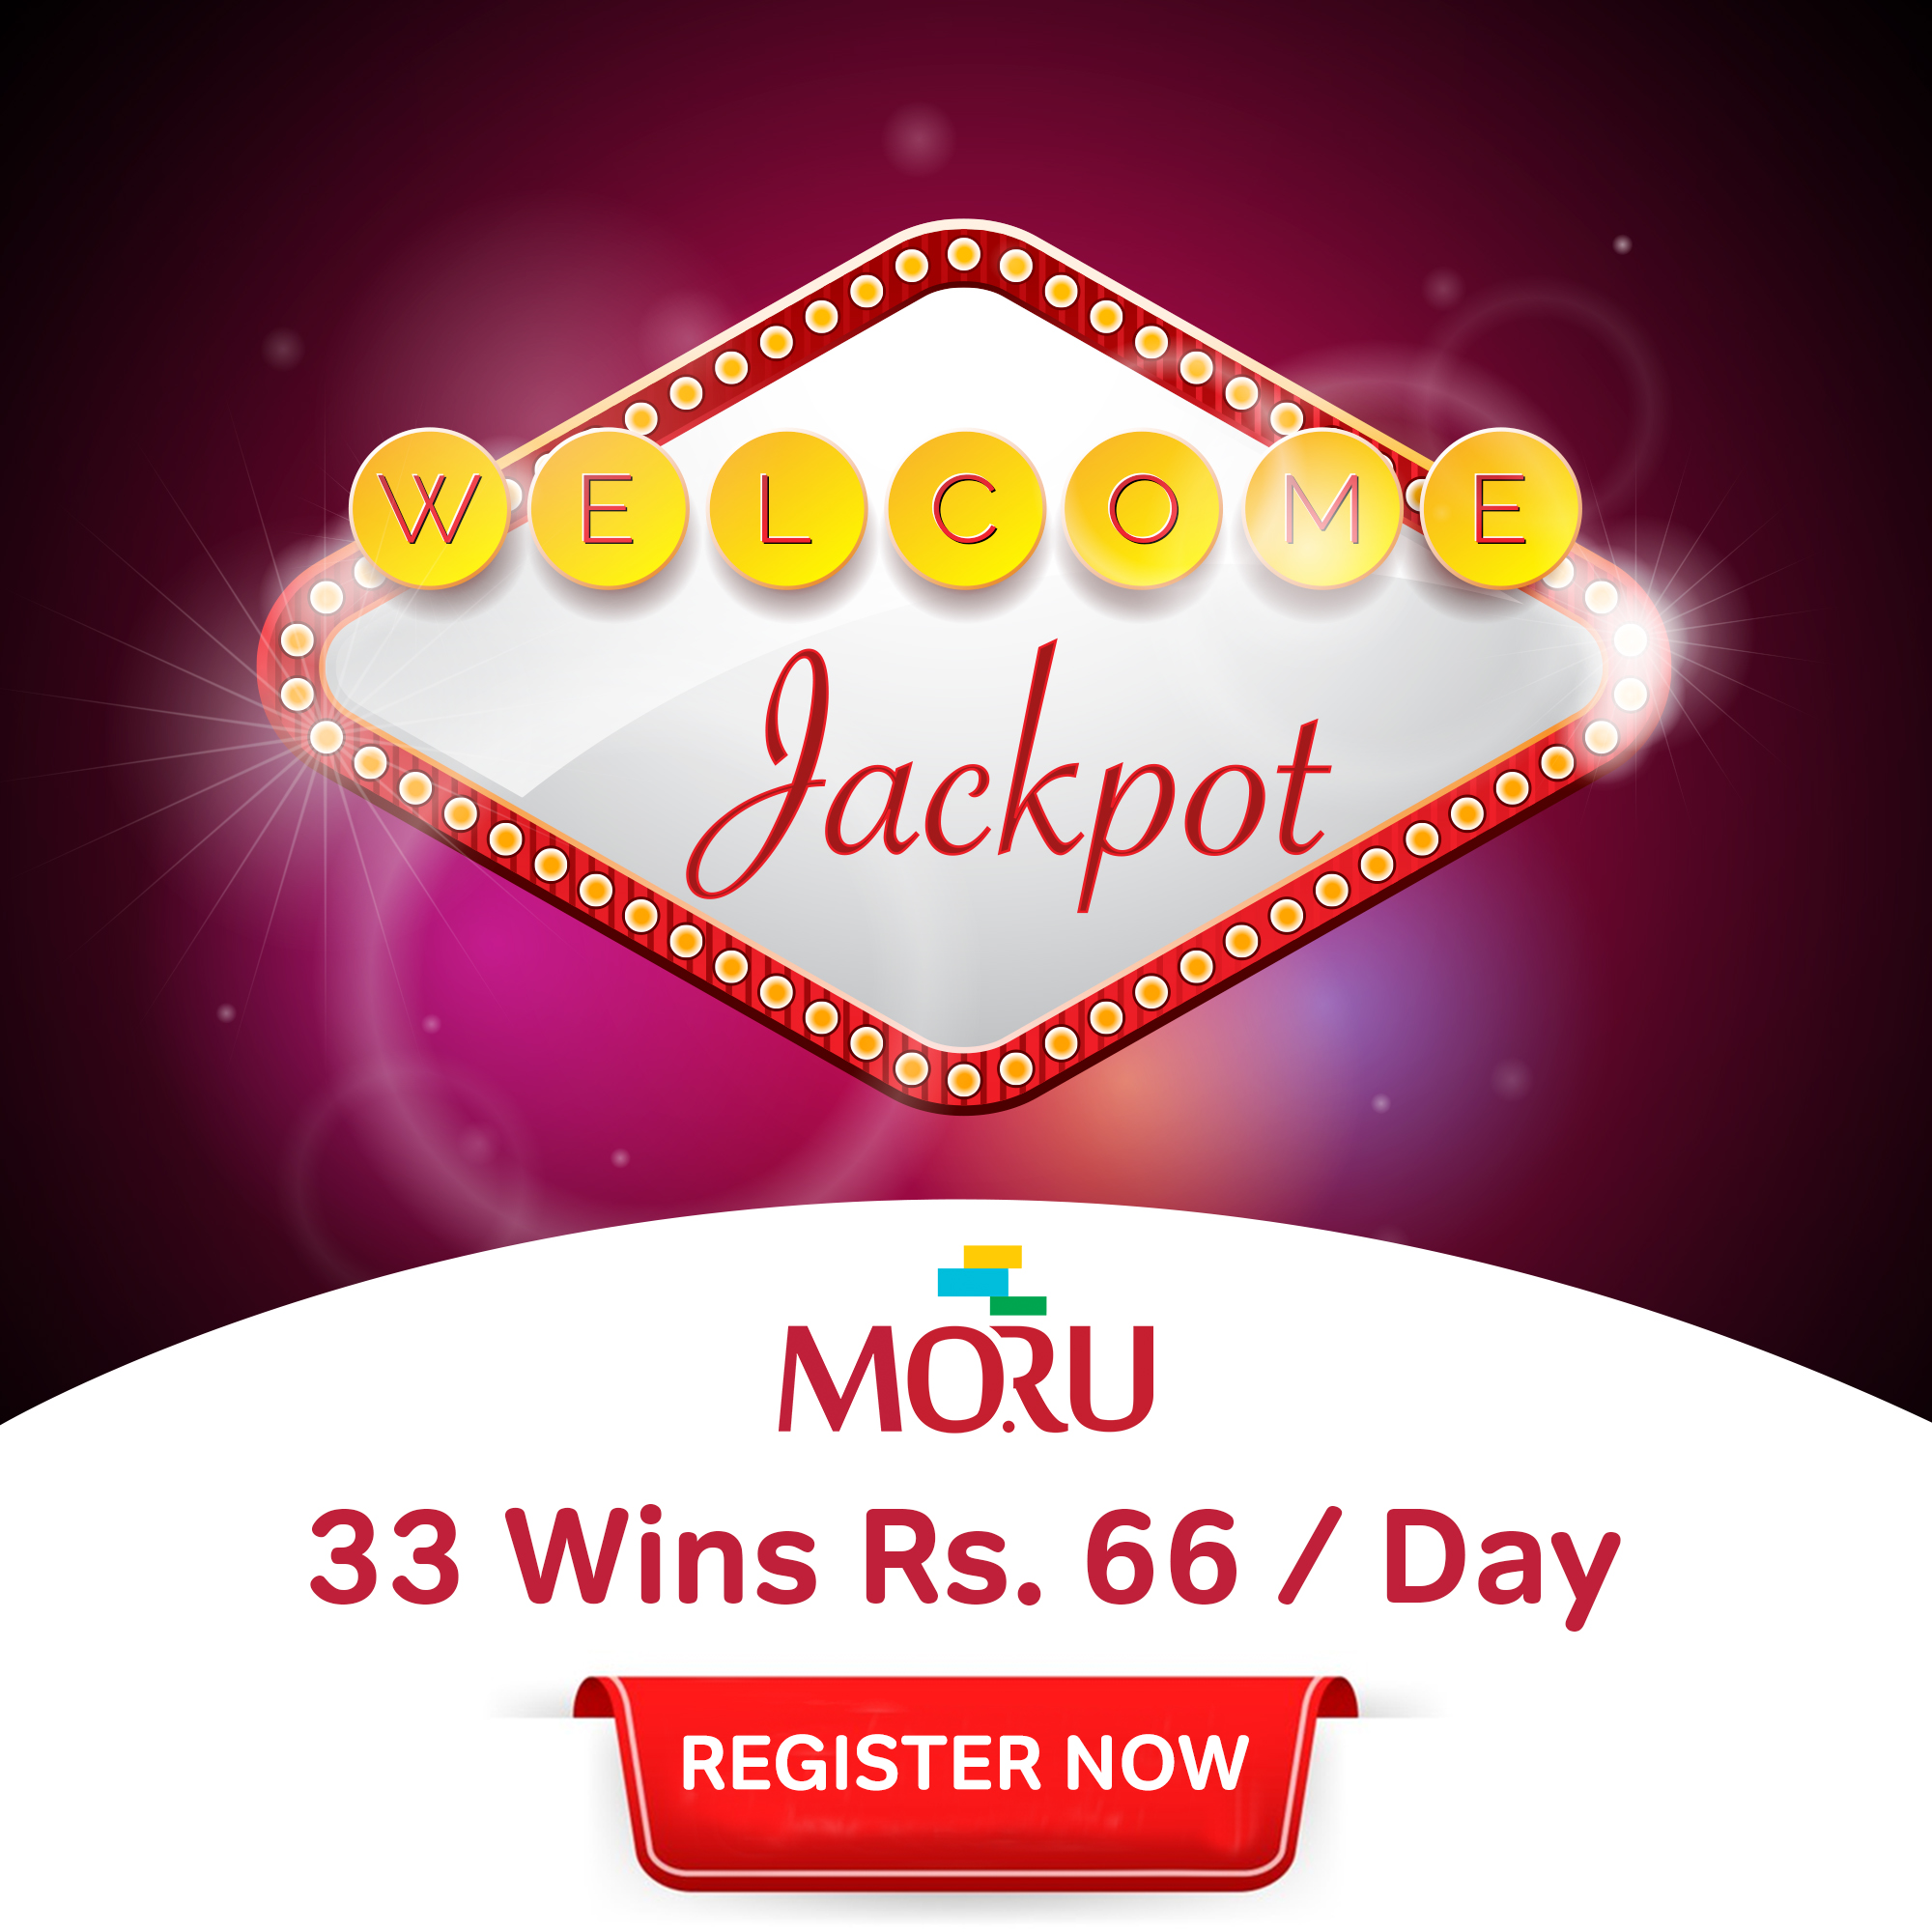 Welcome Jackpot- 33 Wins Rs. 66 Everyday